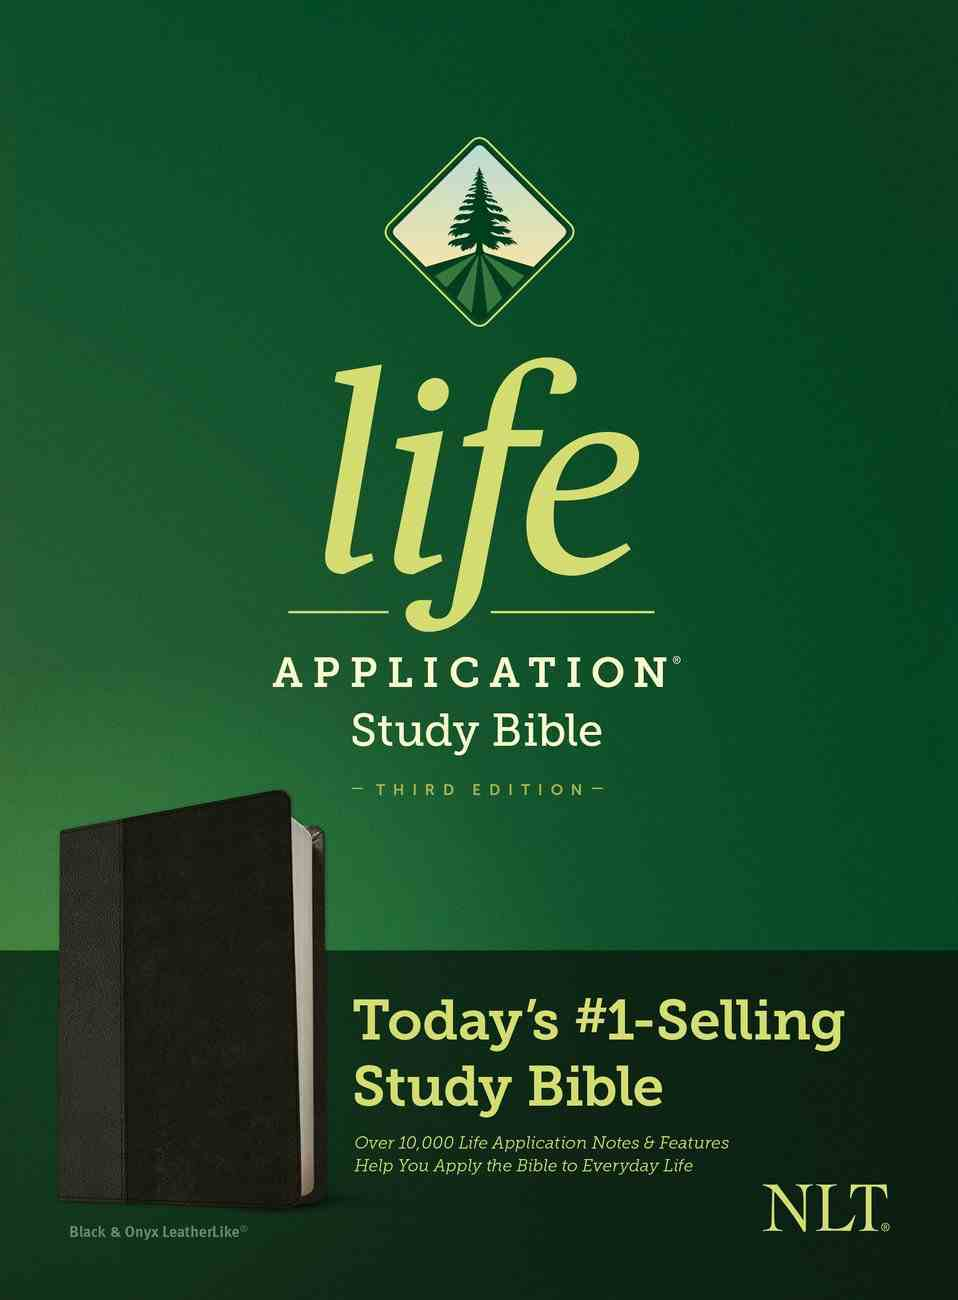 NLT Life Application Study Bible 3rd Edition Black/Onyx (Black Letter Edition) Imitation Leather